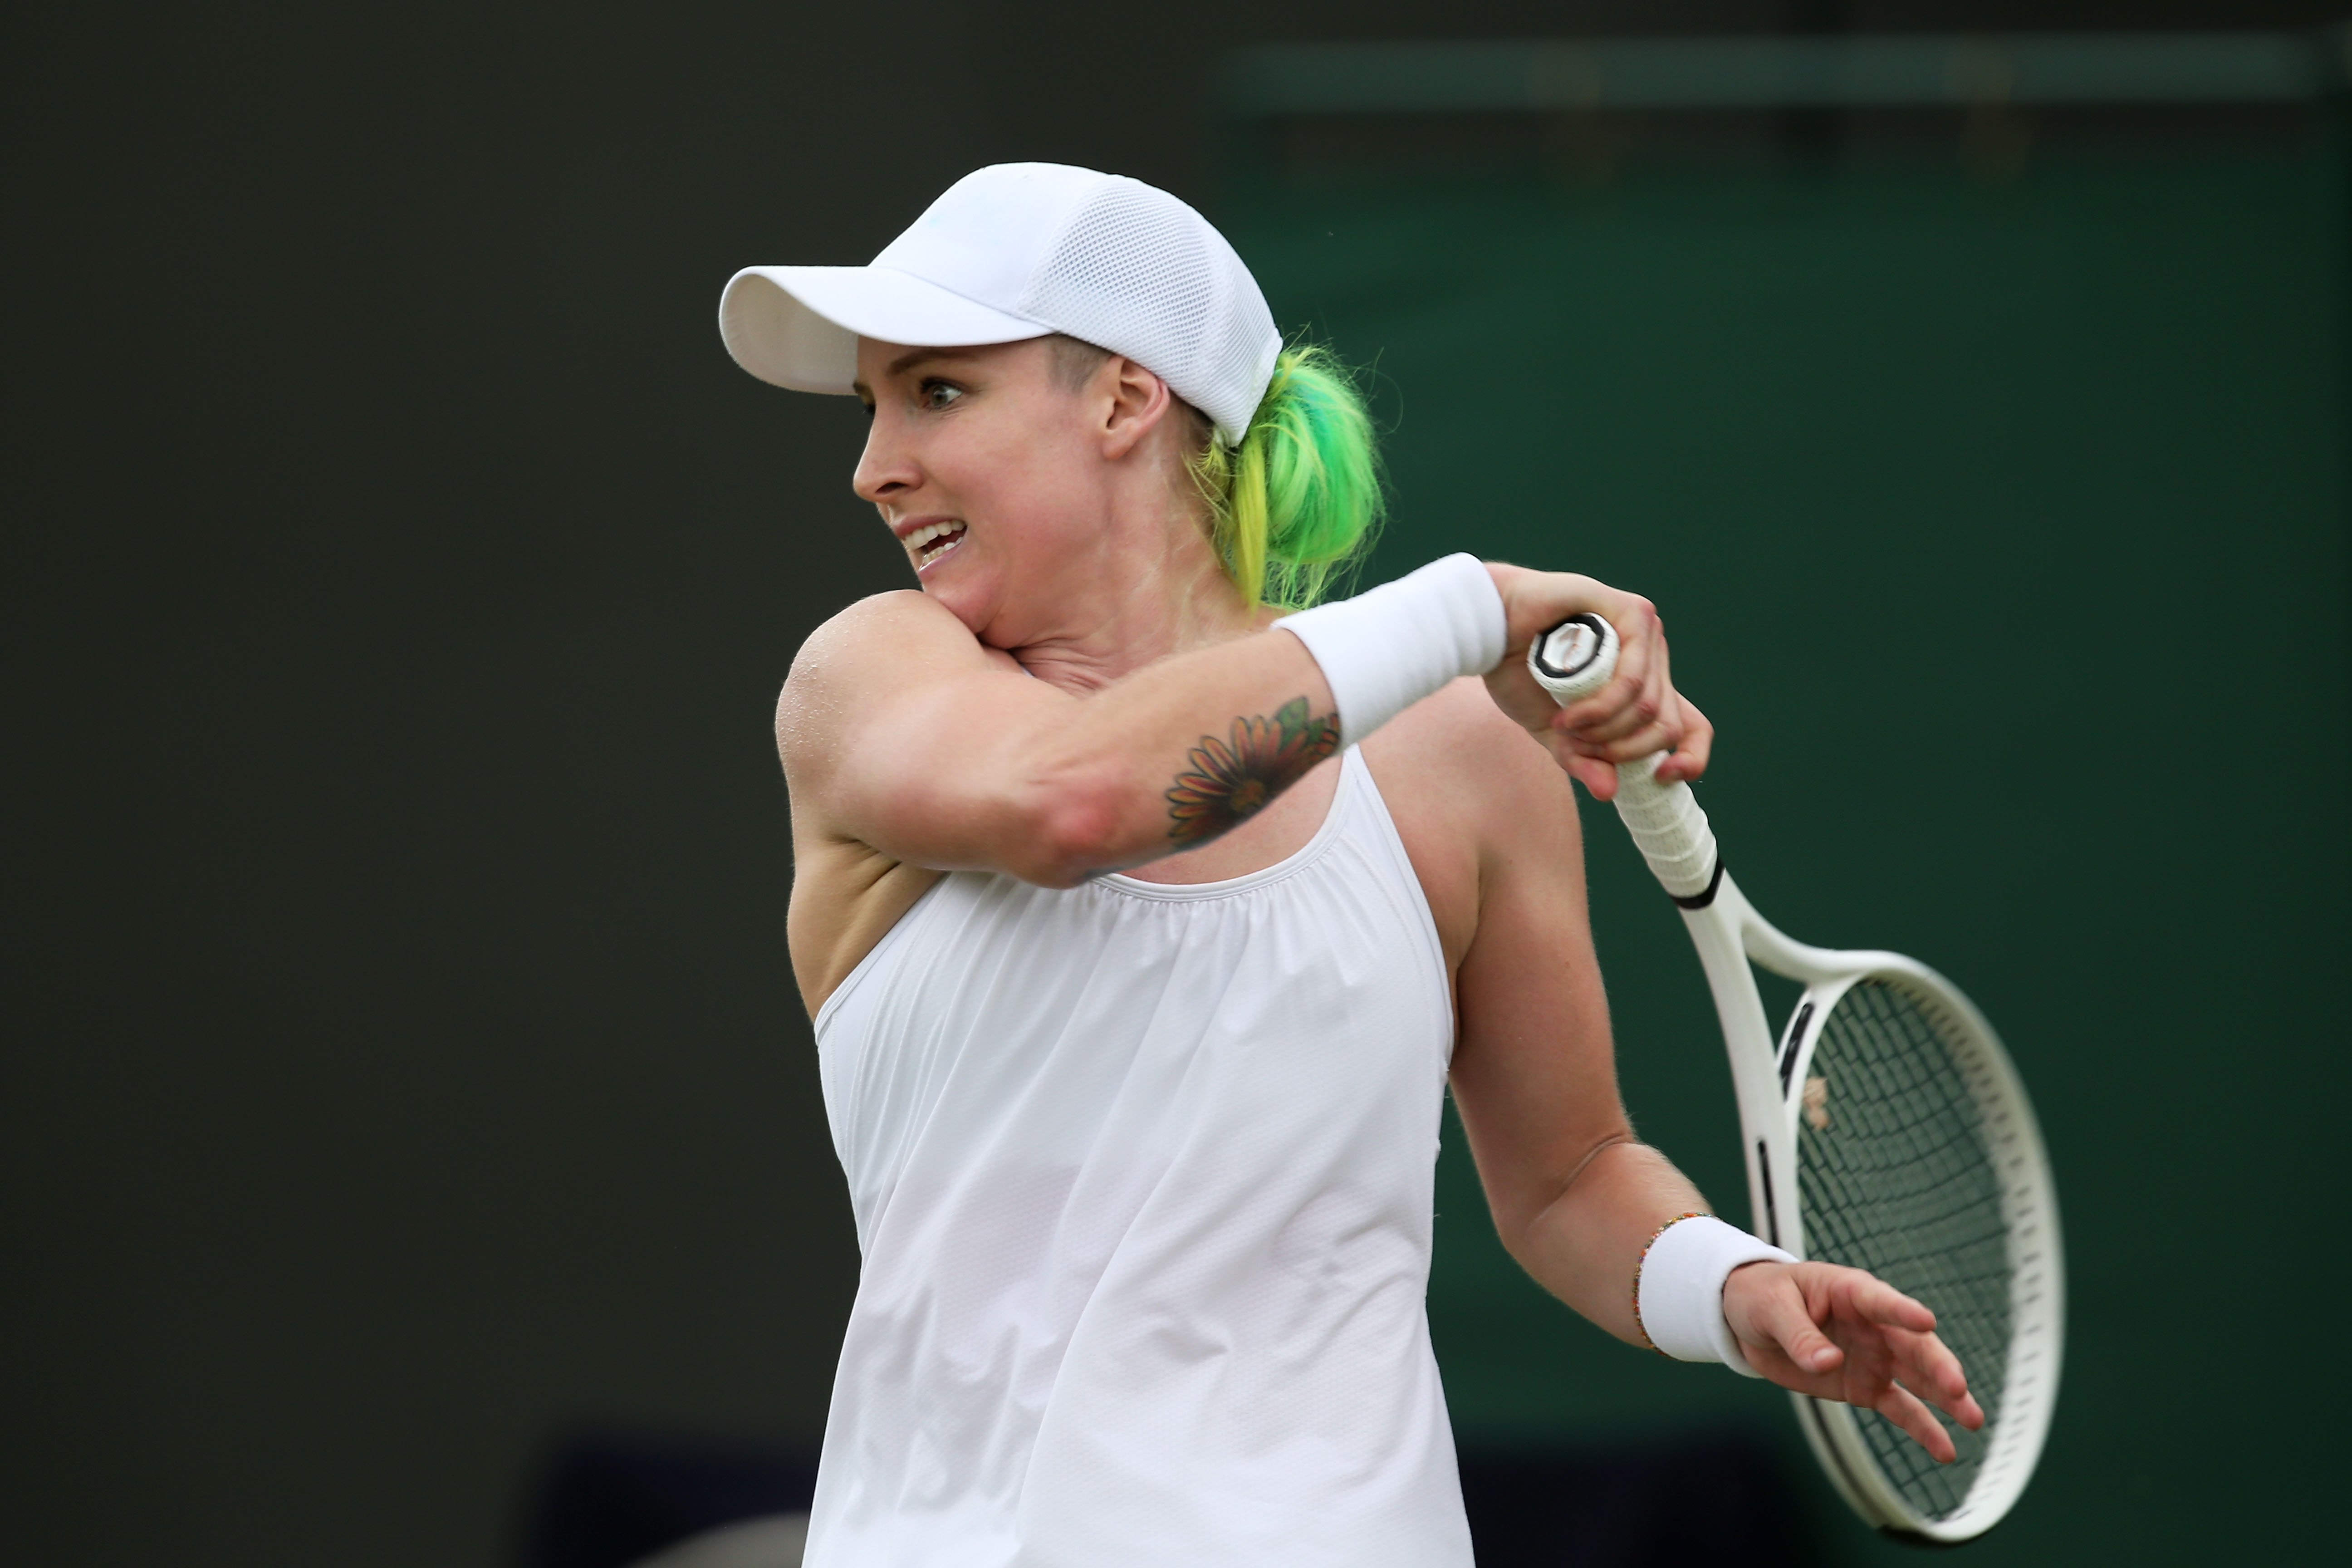 "<b>Bethanie Mattek-Sands</b> Fellow players have dubbed her the ""rock chick"" of tennis because of her tattoos and penchant for motorcycles and the fact that she wore a black dress to her wedding. The 29-year-old brings her free-spirited ways to the court, where she wears knee-high socks and black antiglare paint."